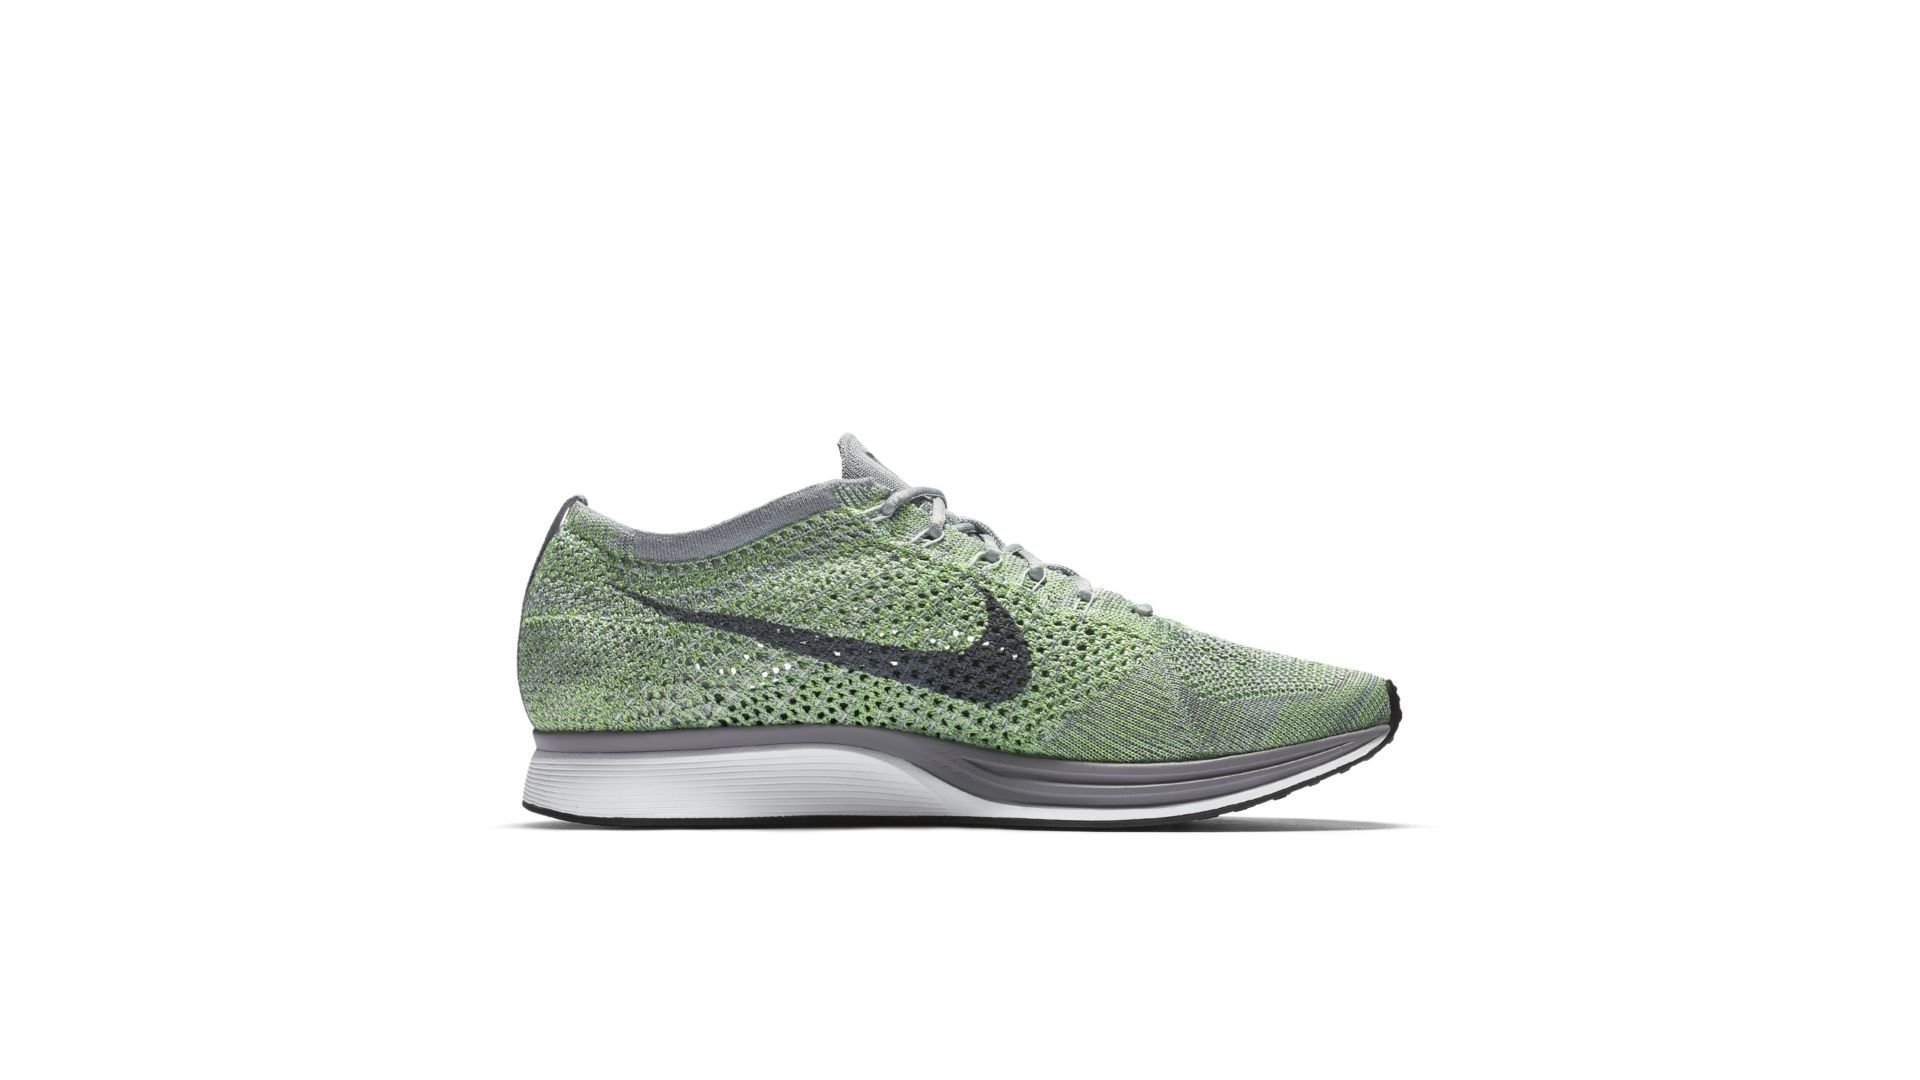 Nike Flyknit Racer Macaron Pack Pistachio (526628-103)